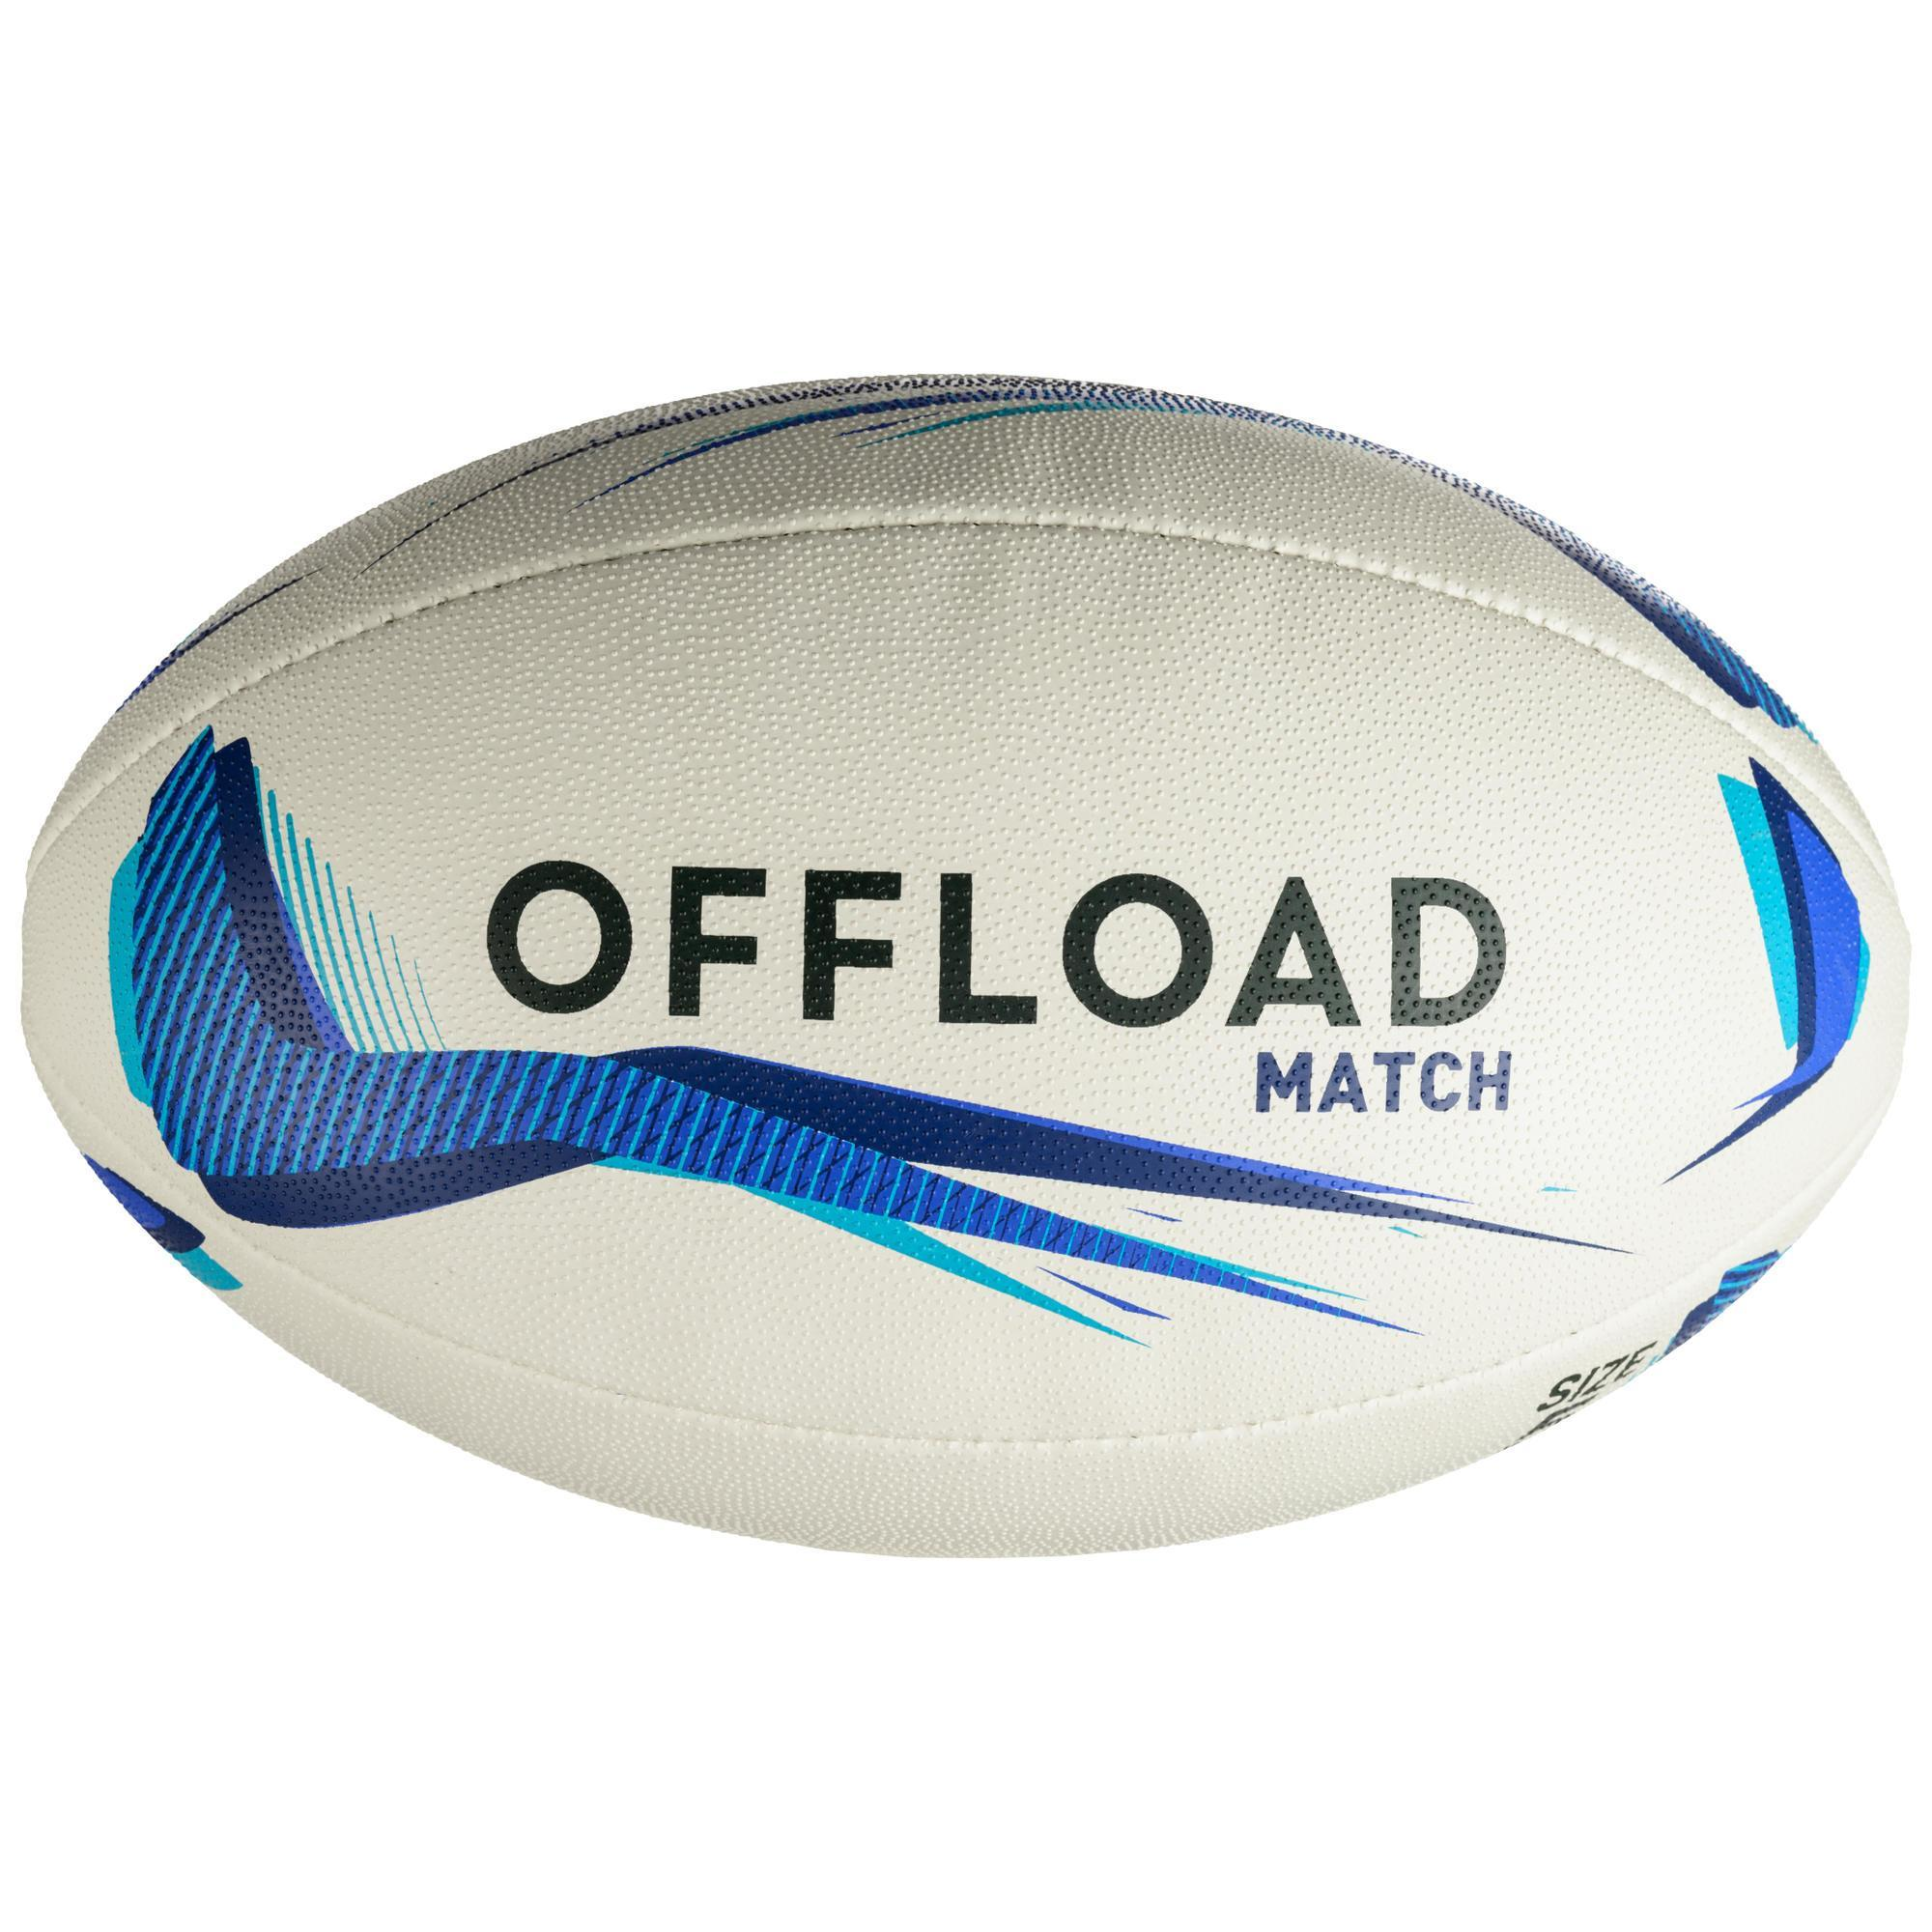 Offload Rugbybal R500 maat 5 blauw